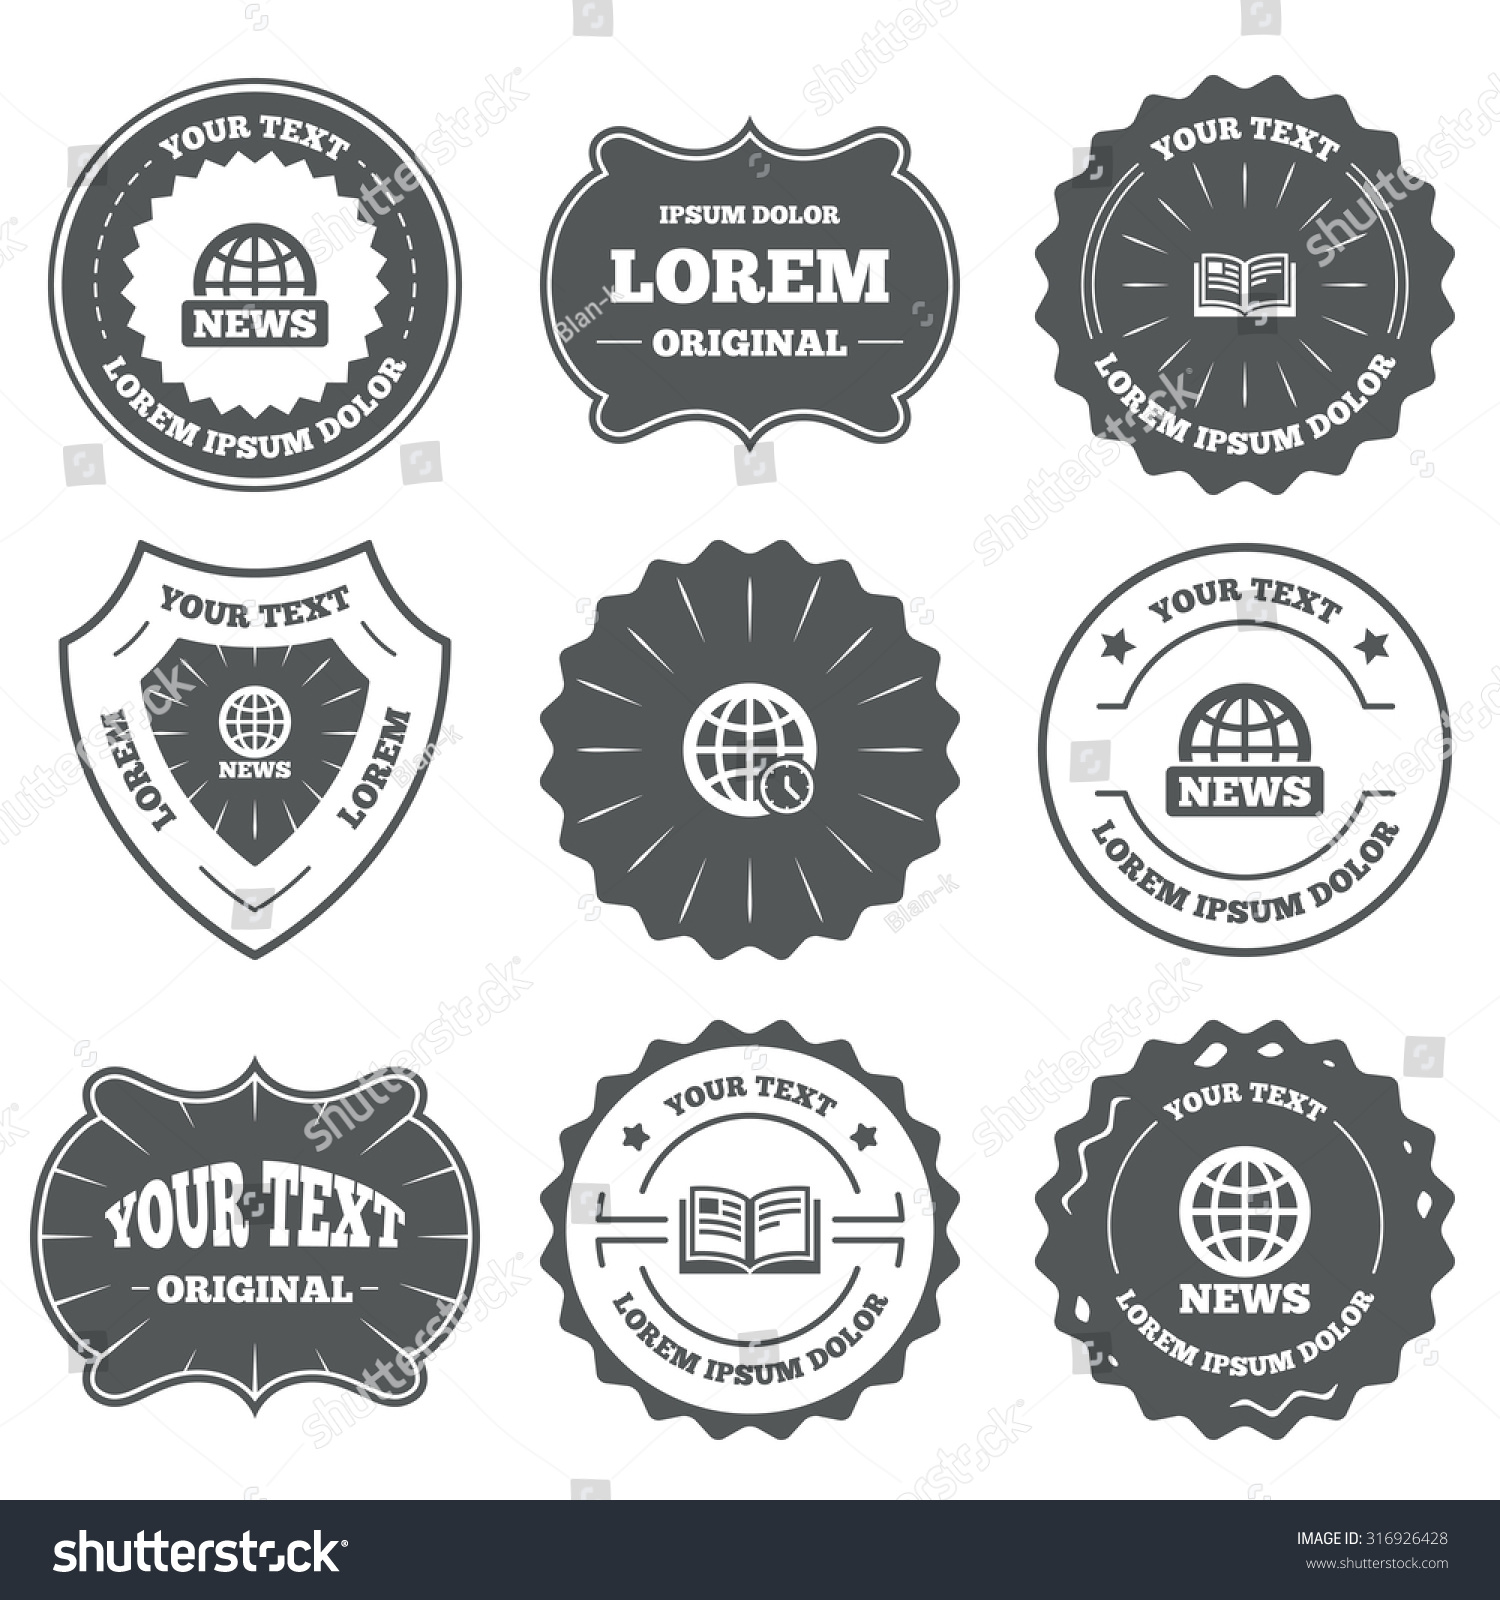 vintage emblems labels news icons world stock vector  vintage emblems labels news icons world globe symbols open book sign